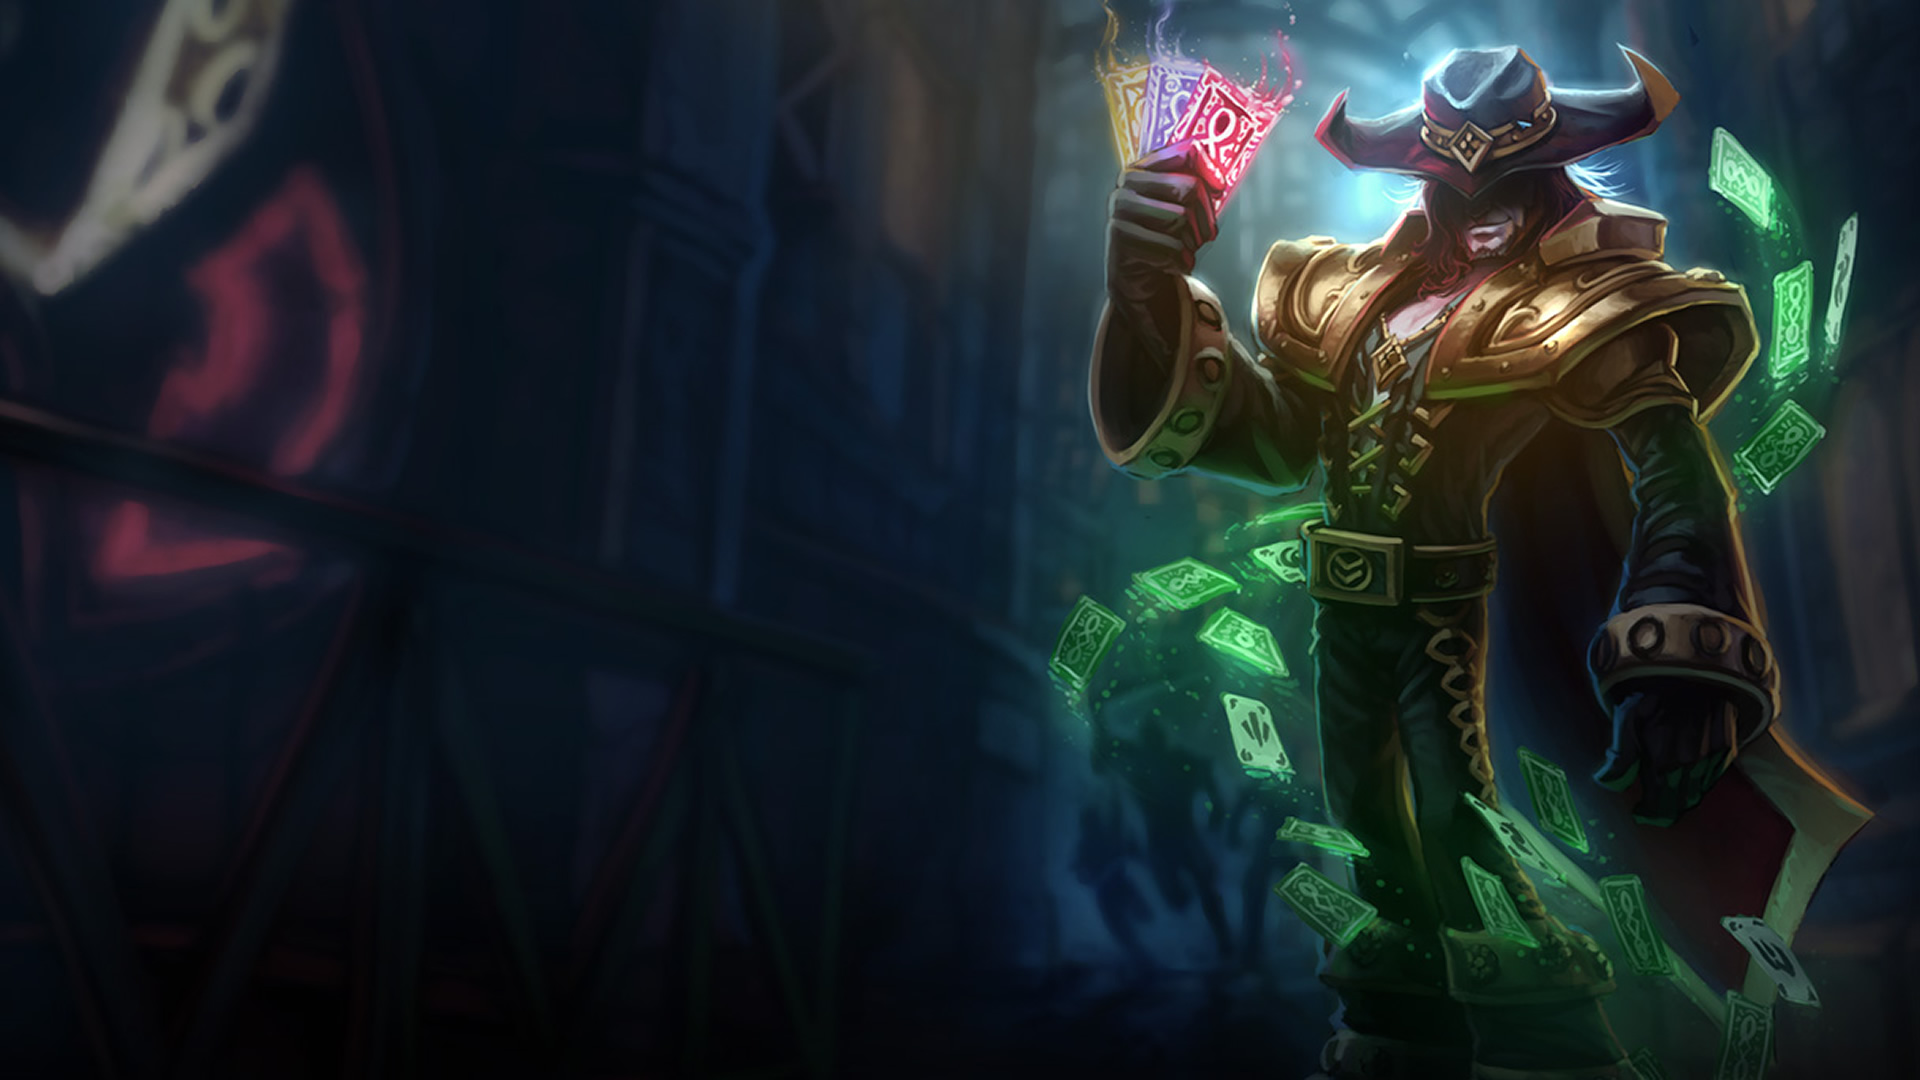 Lol twisted fate twisted fate classic 1 voltagebd Gallery